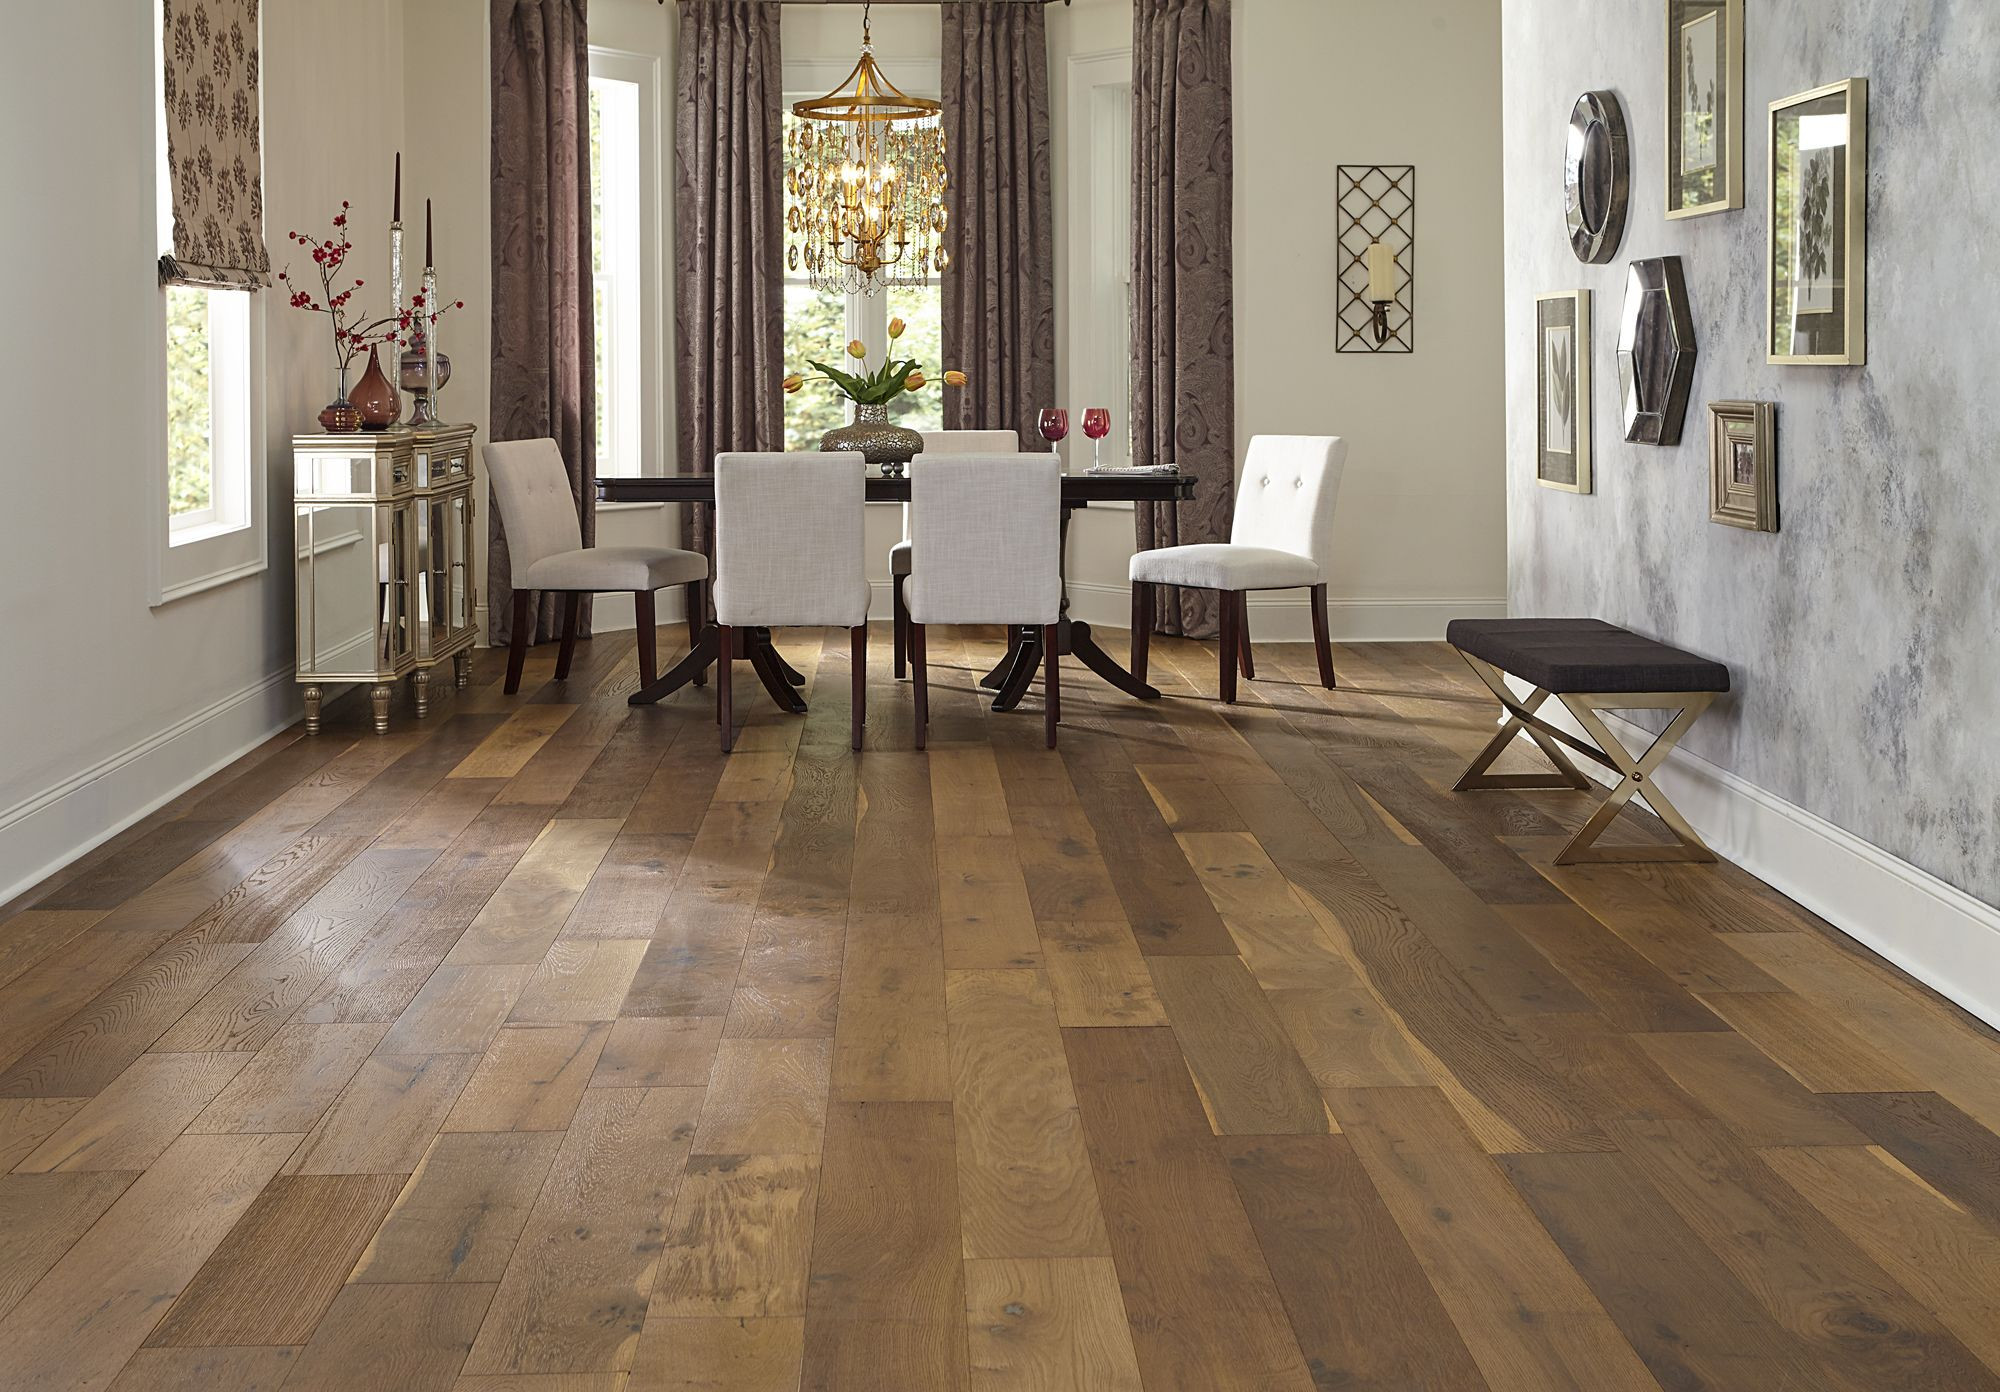 how to replace hardwood floor planks of 7 1 2 wide planks and a rustic look bellawood willow manor oak has with regard to 7 1 2 wide planks and a rustic look bellawood willow manor oak has a storied old world appearance